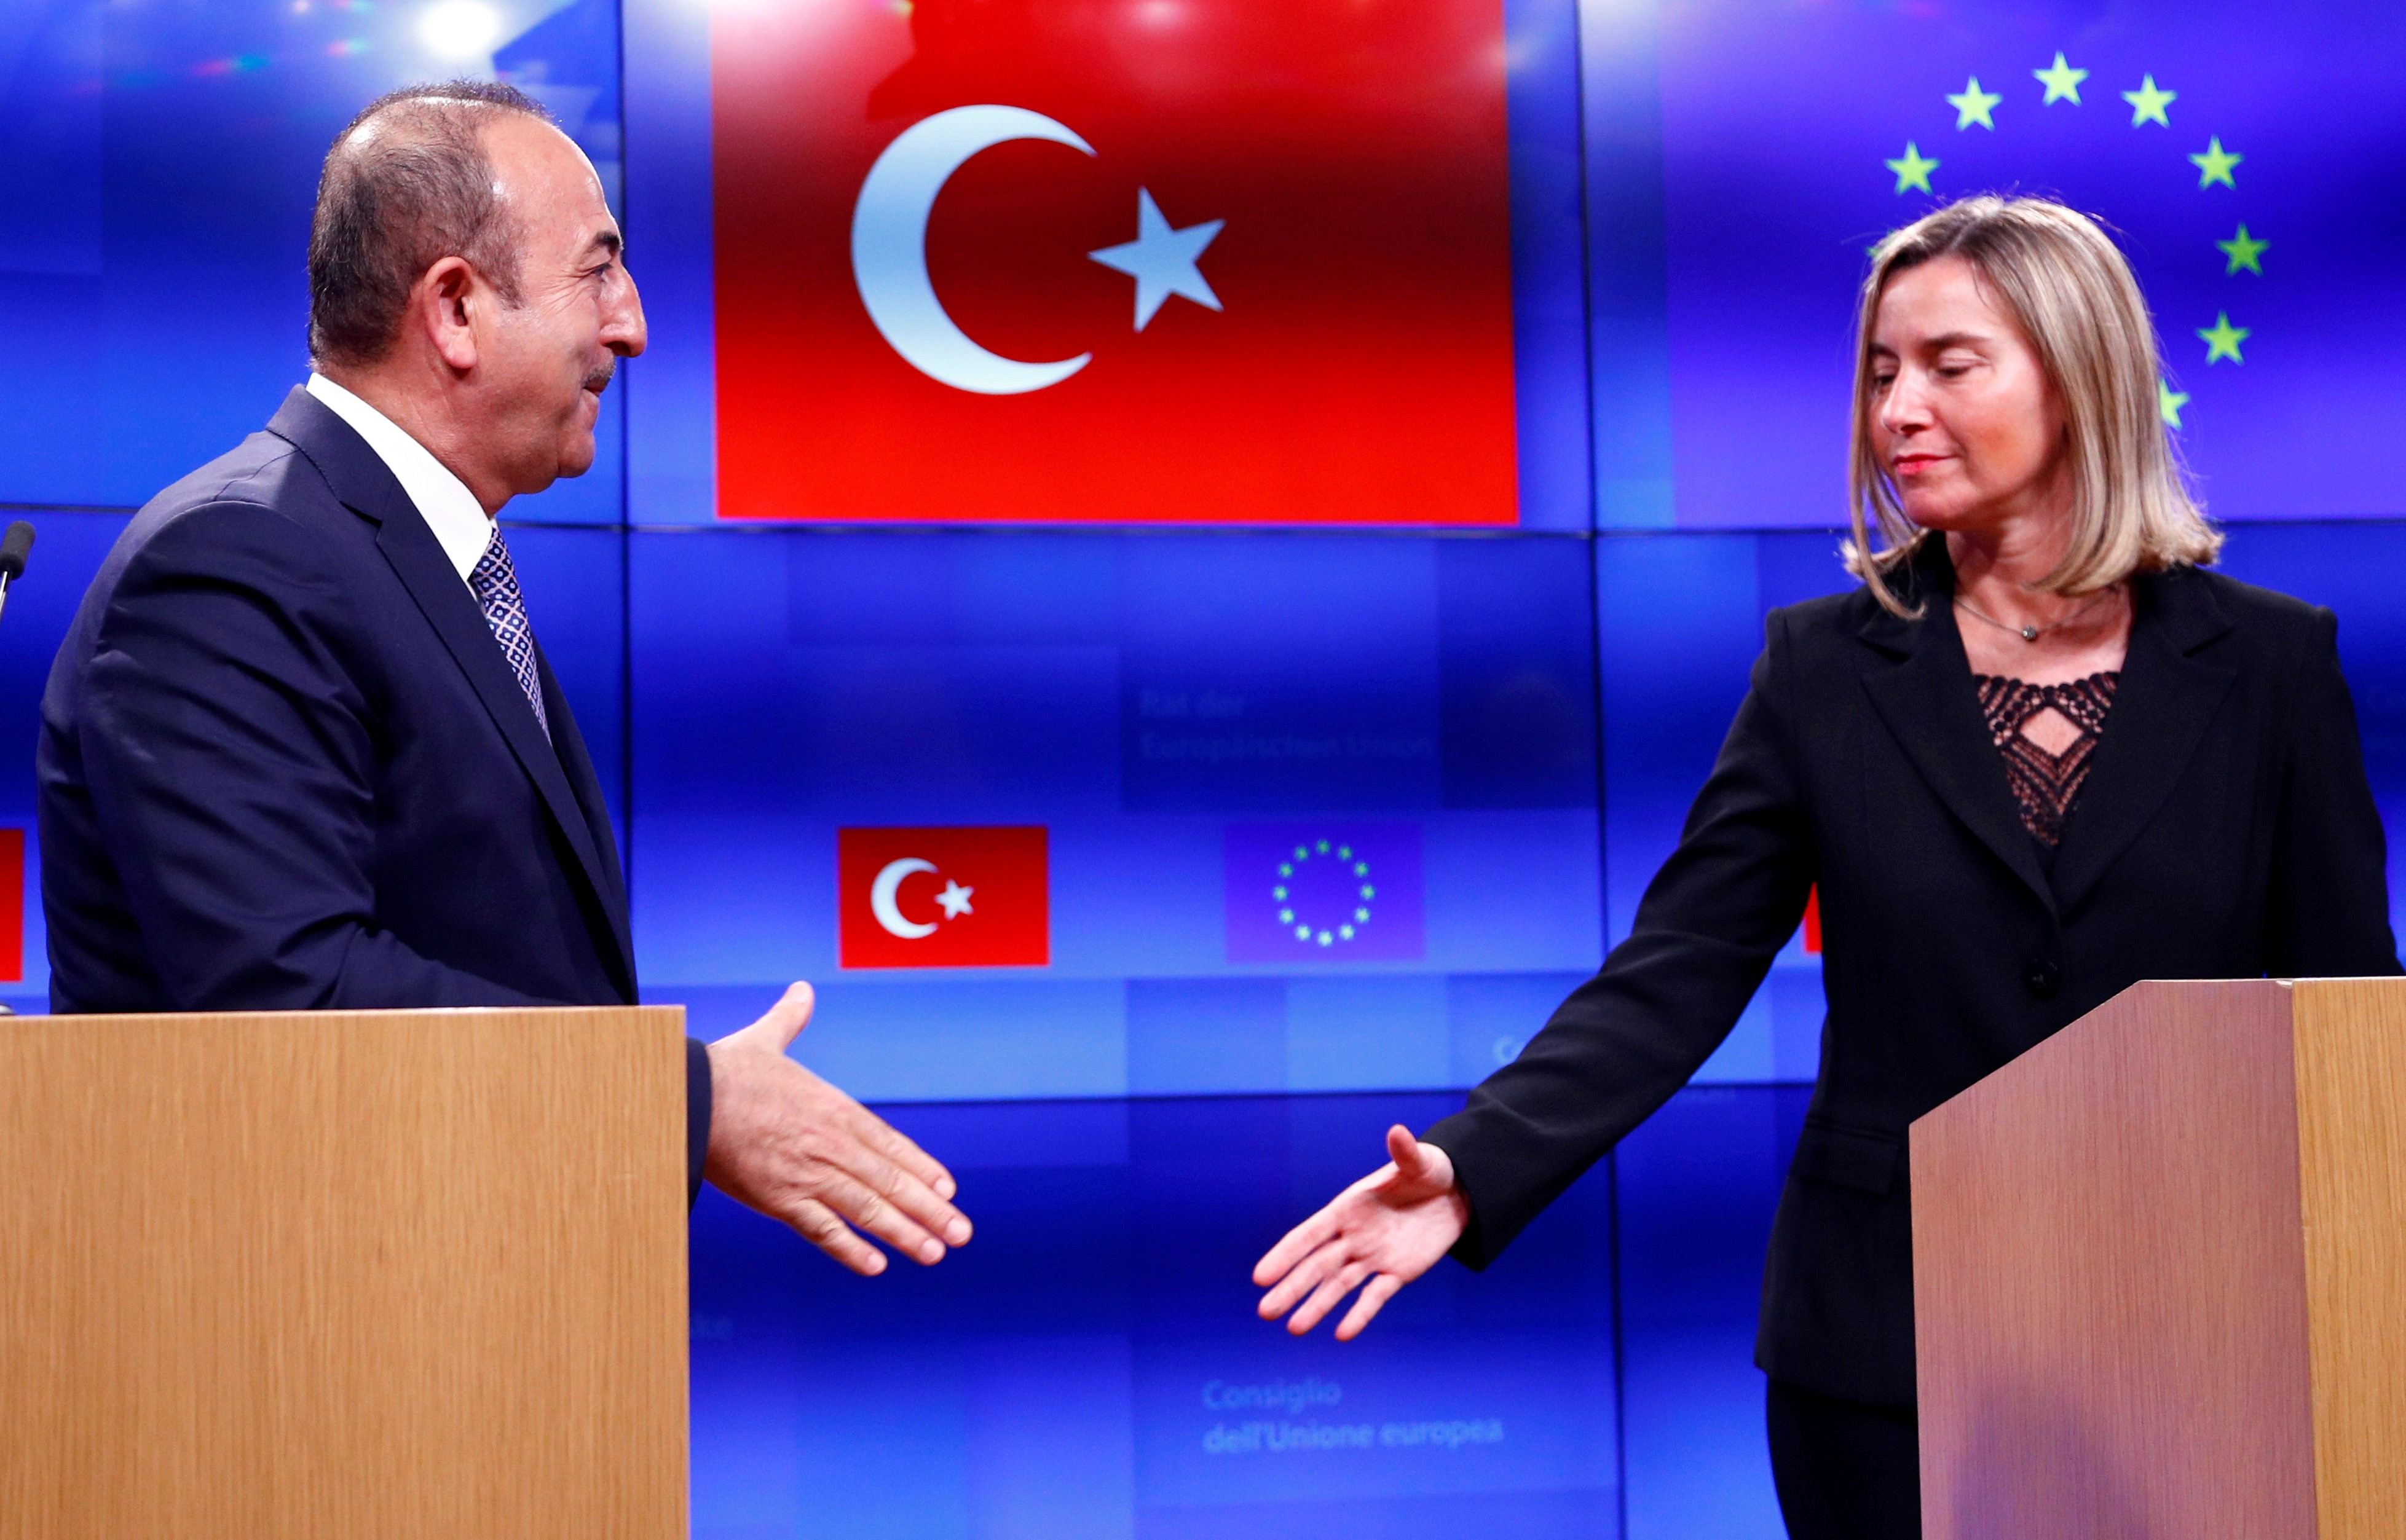 Turkish Foreign Minister Mevlut Cavusoglu shakes hands with European Union foreign policy chief Federica Mogherini  Belgium on 15 March (Reuters)